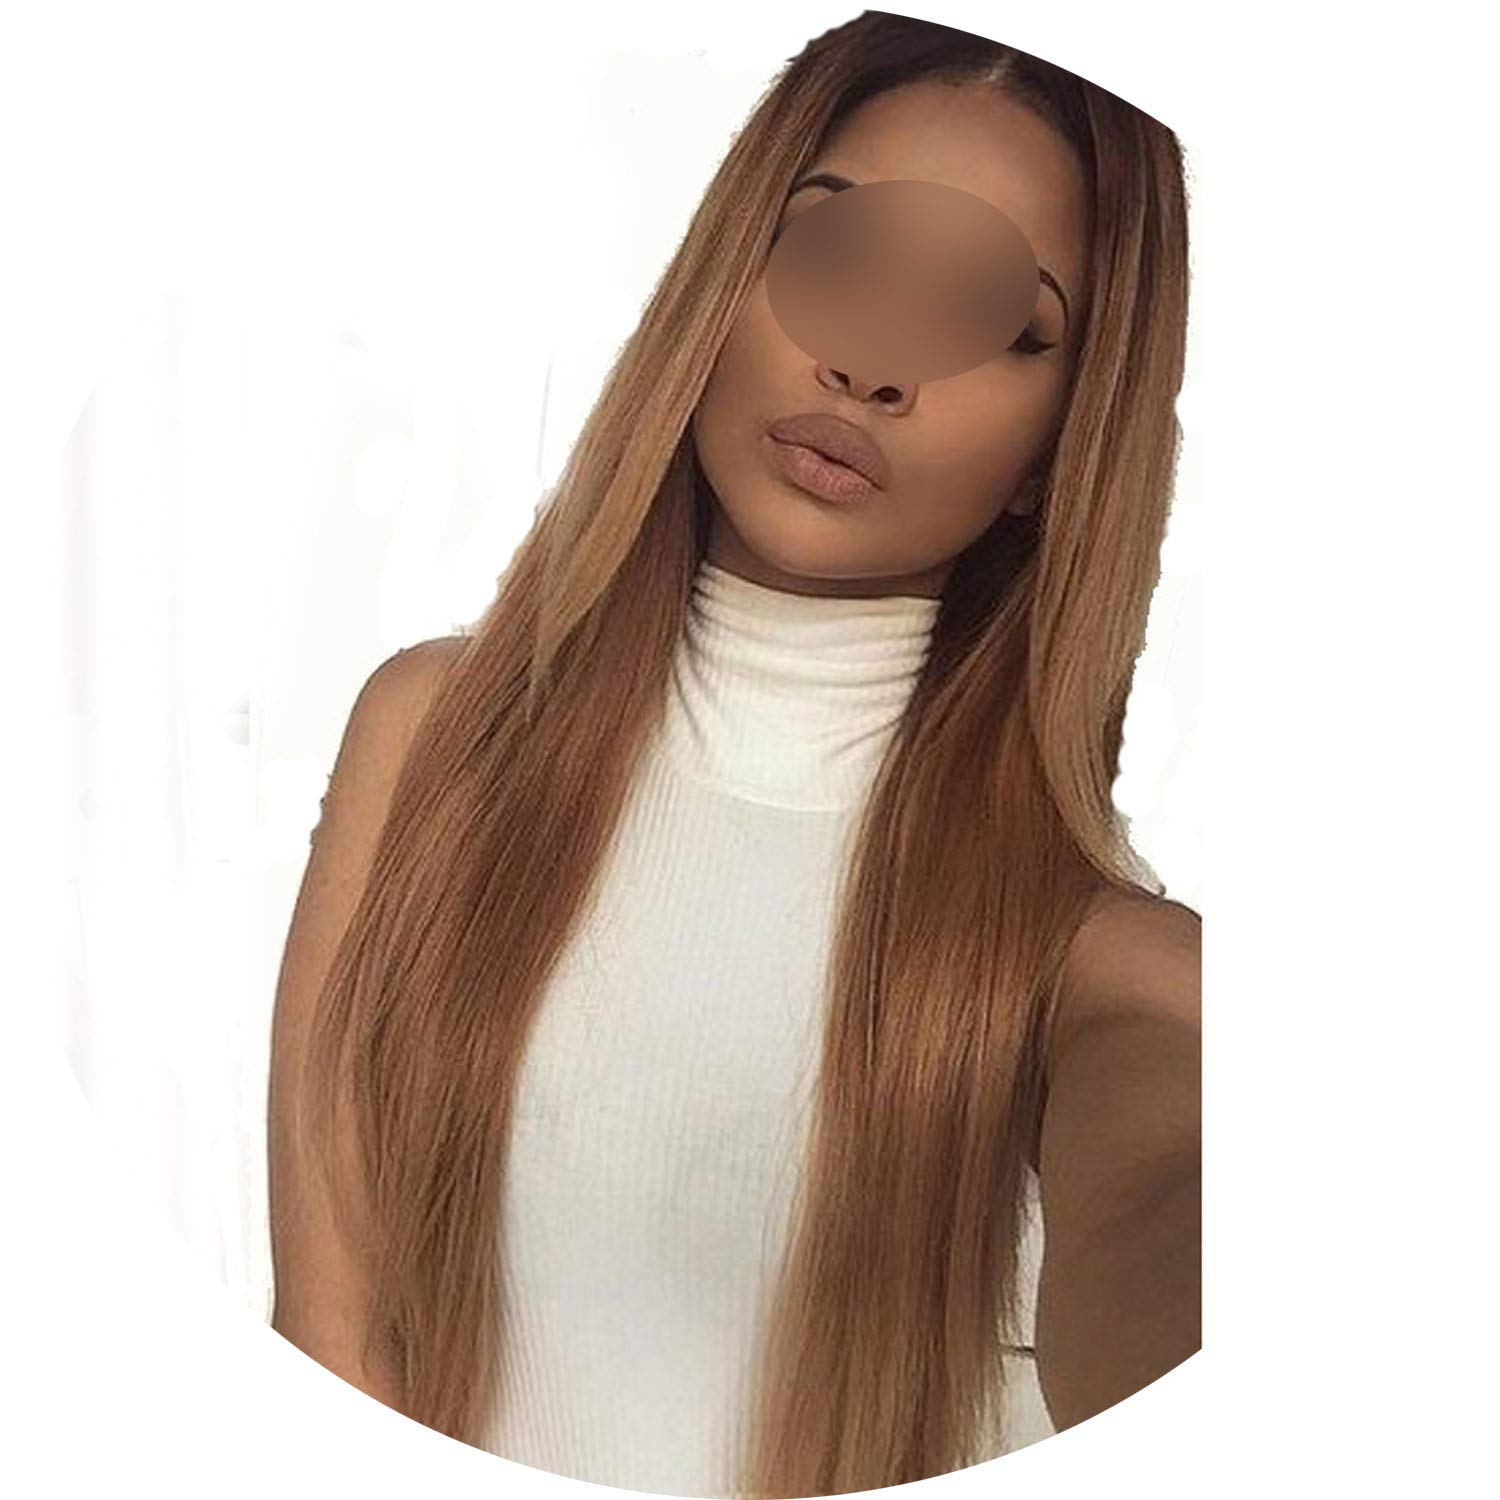 Ombre Color 13X6 Lace Front Human Hair Wigs With Baby Hair Pre-Plucked Hairline Brazilian Remy Hair Glueless Wigs crack of dawn,24Inches,150%,13X3 Lace Front Wig